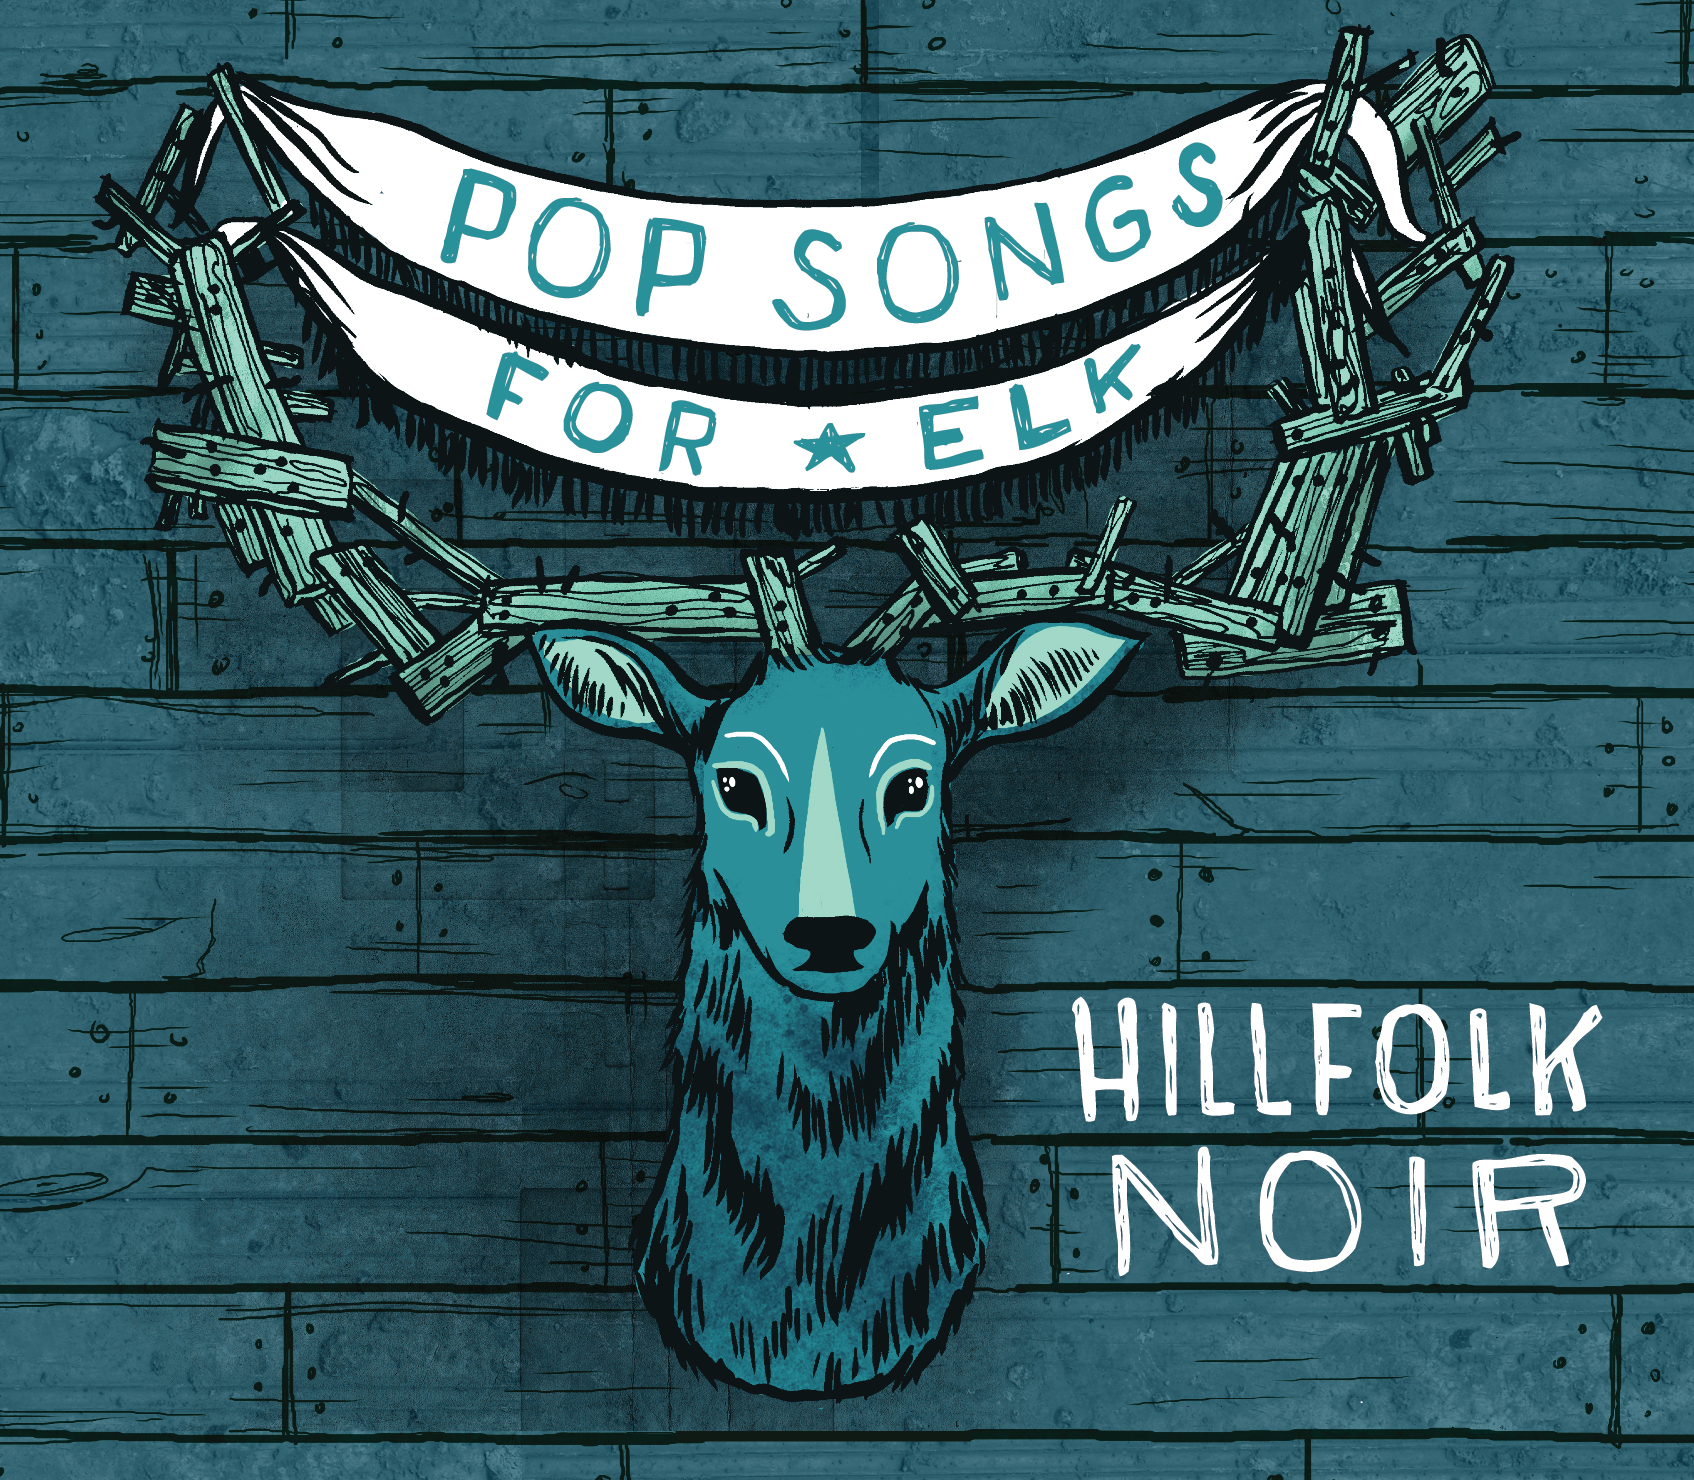 Hillfolk Noir Pop Songs For Elk